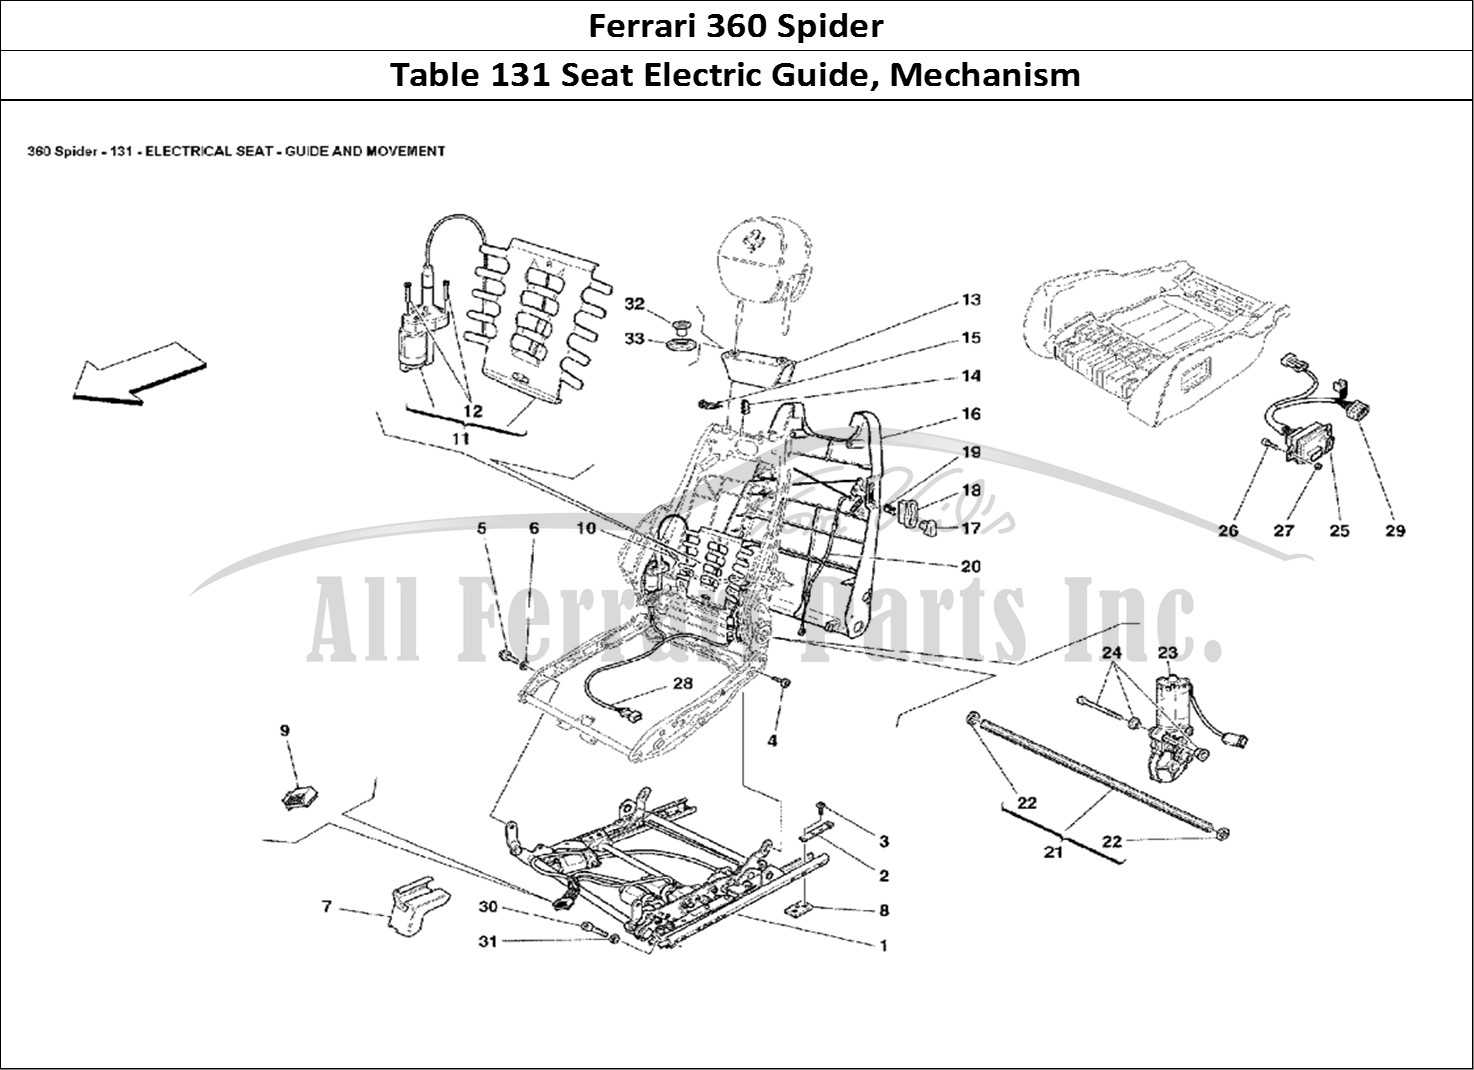 Buy Original Ferrari 360 Spider 131 Seat Electric Guide